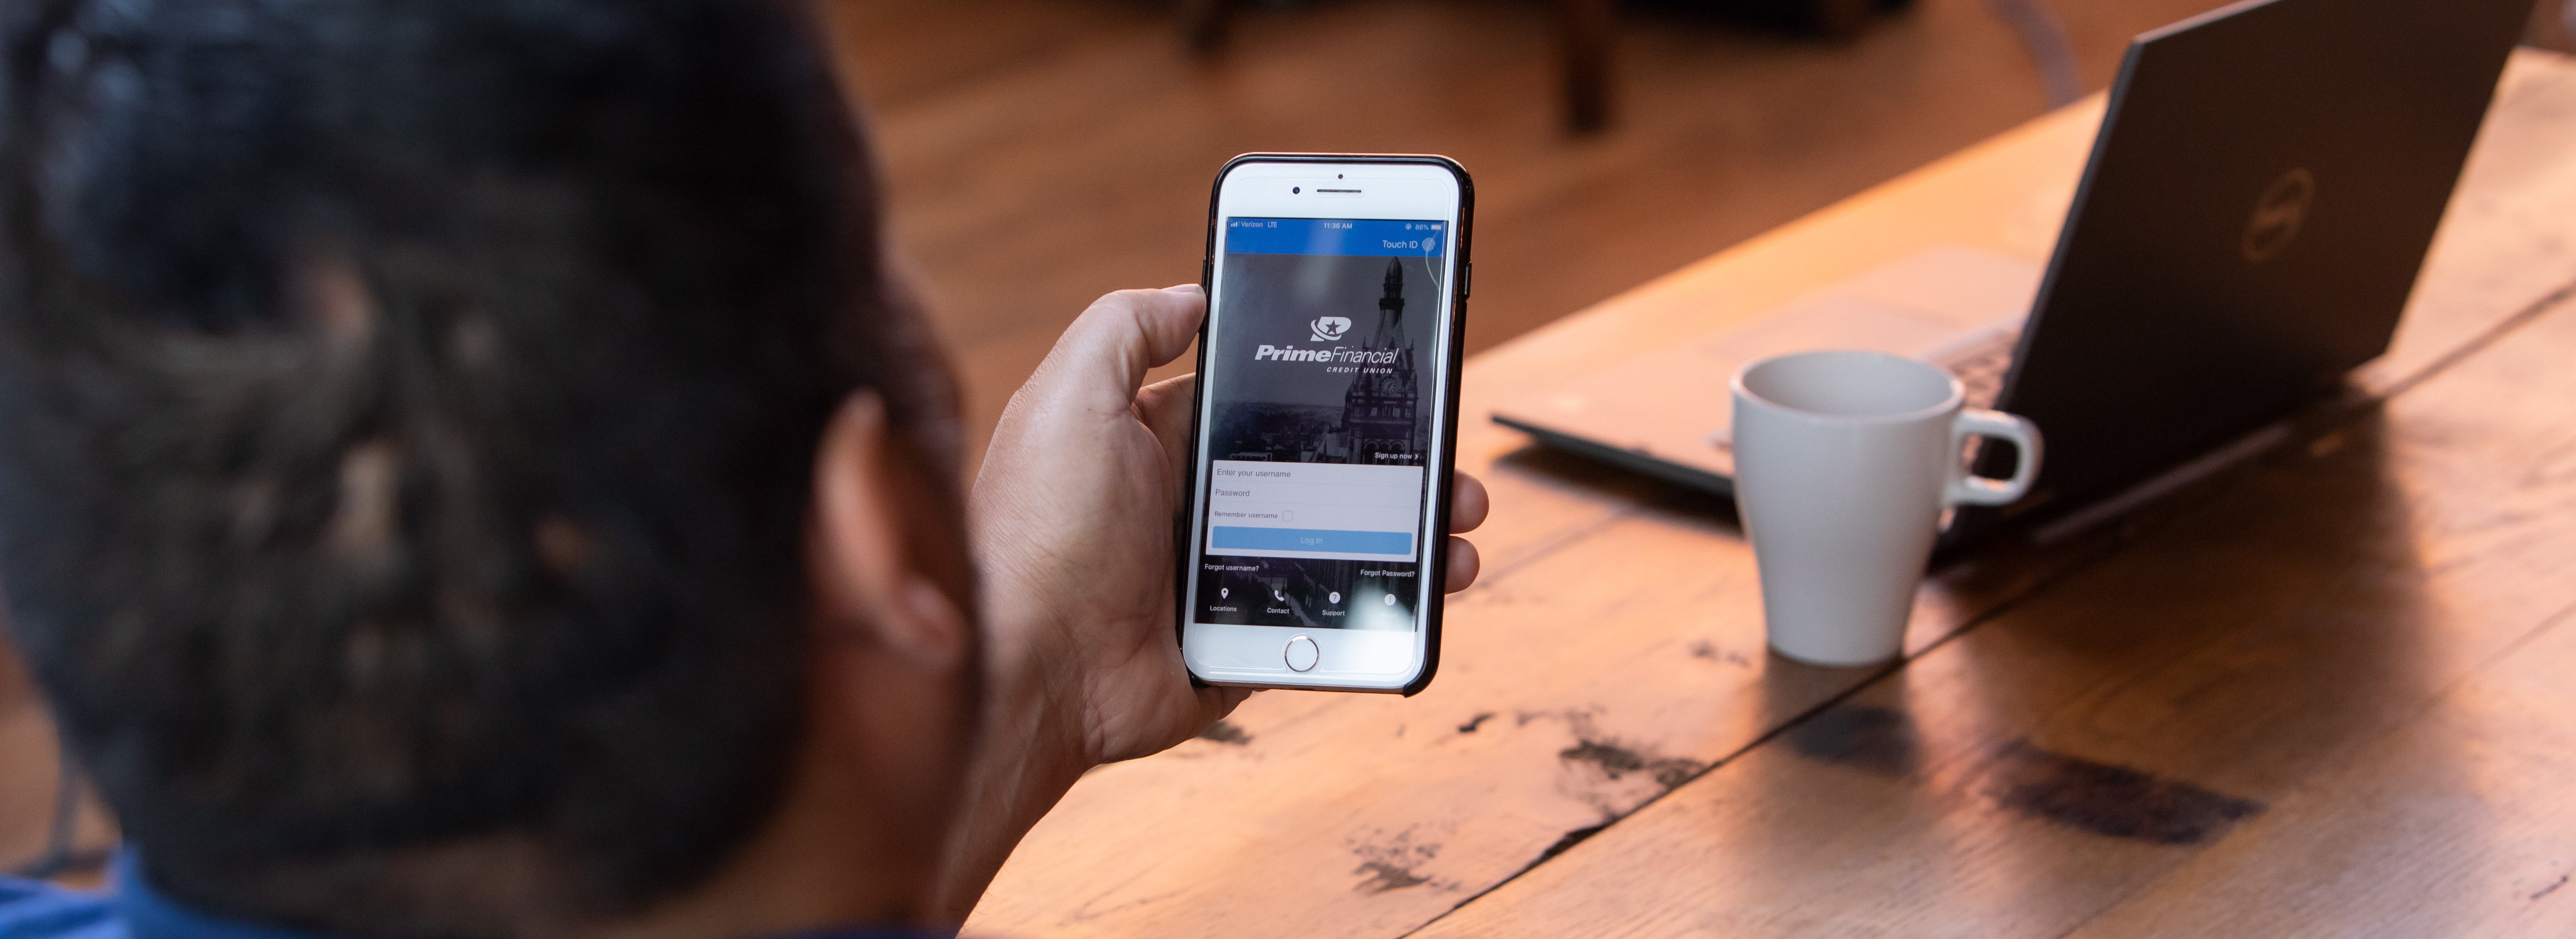 Man using mobile banking app on phone at cafe